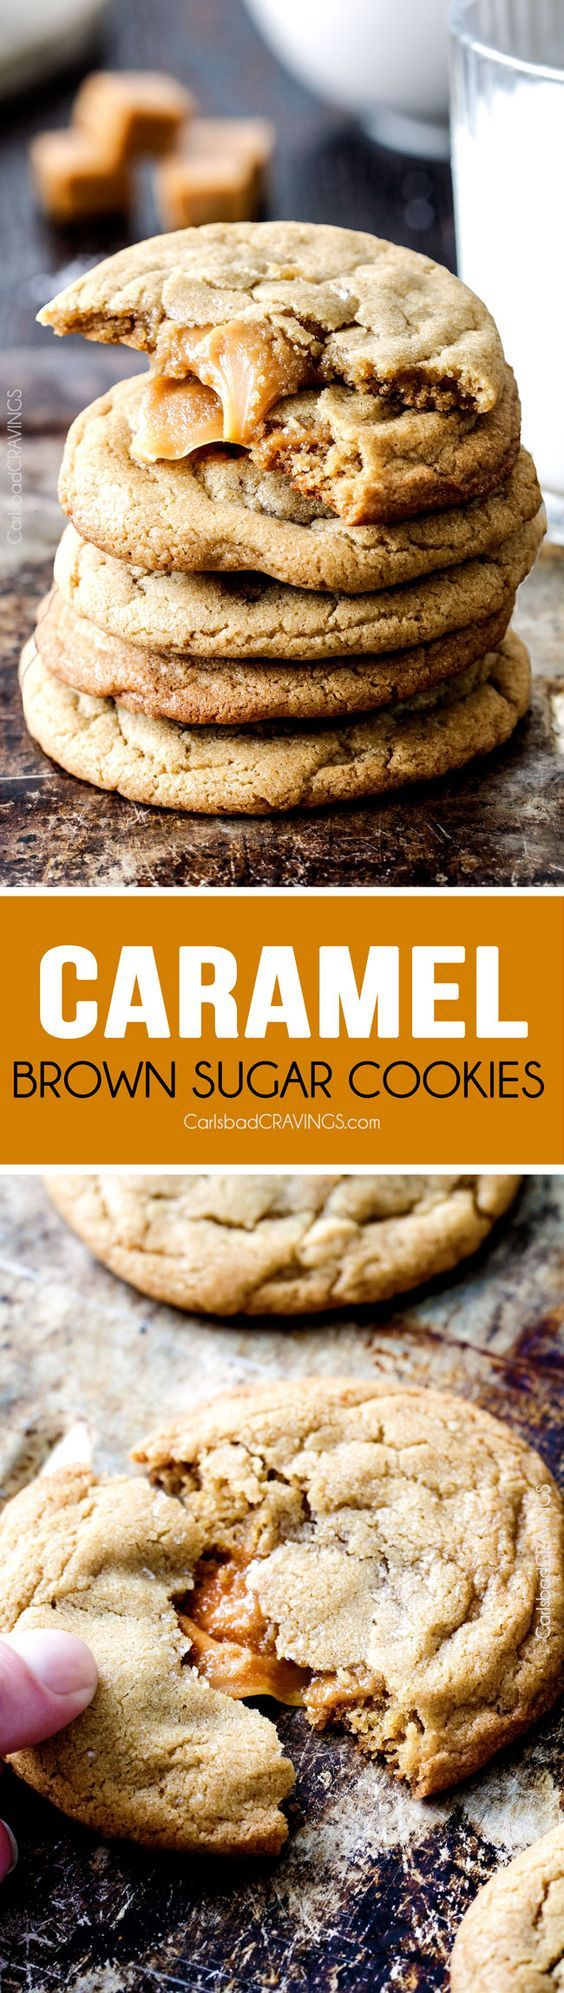 Caramel Stuffed Brown Sugar Cookies are incredibly soft and chewy and infused with brown butter! Best cookies EVER!